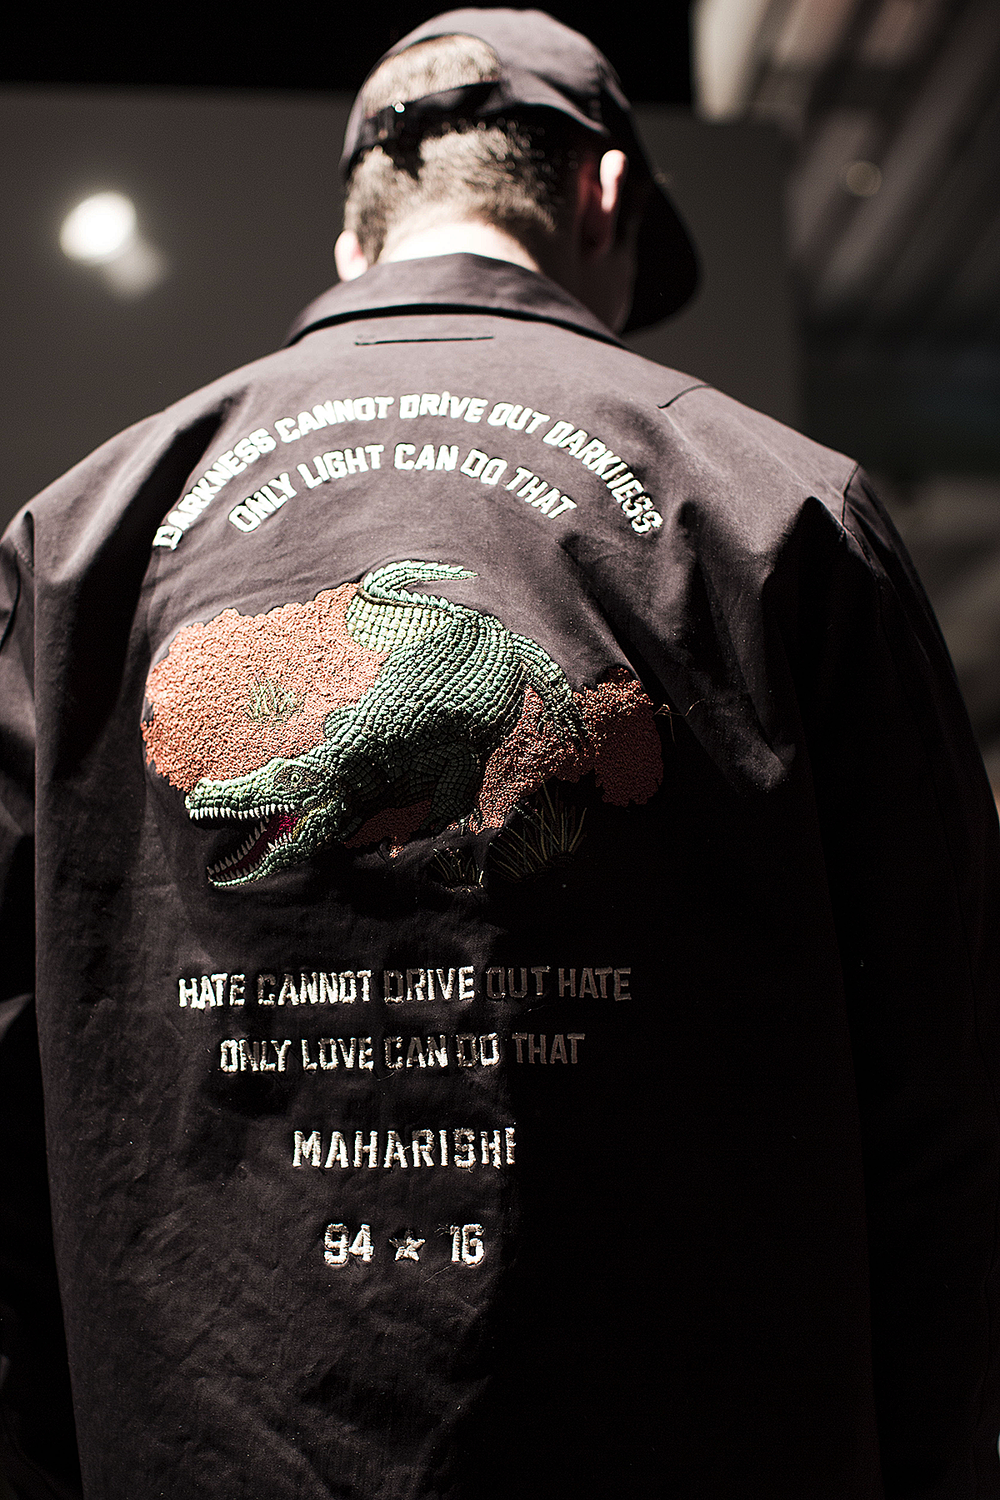 London Collections LCM-Maharishi-Darkness cannot Drive out Darkness Autumn Winter 2016 Lillie Eiger.png